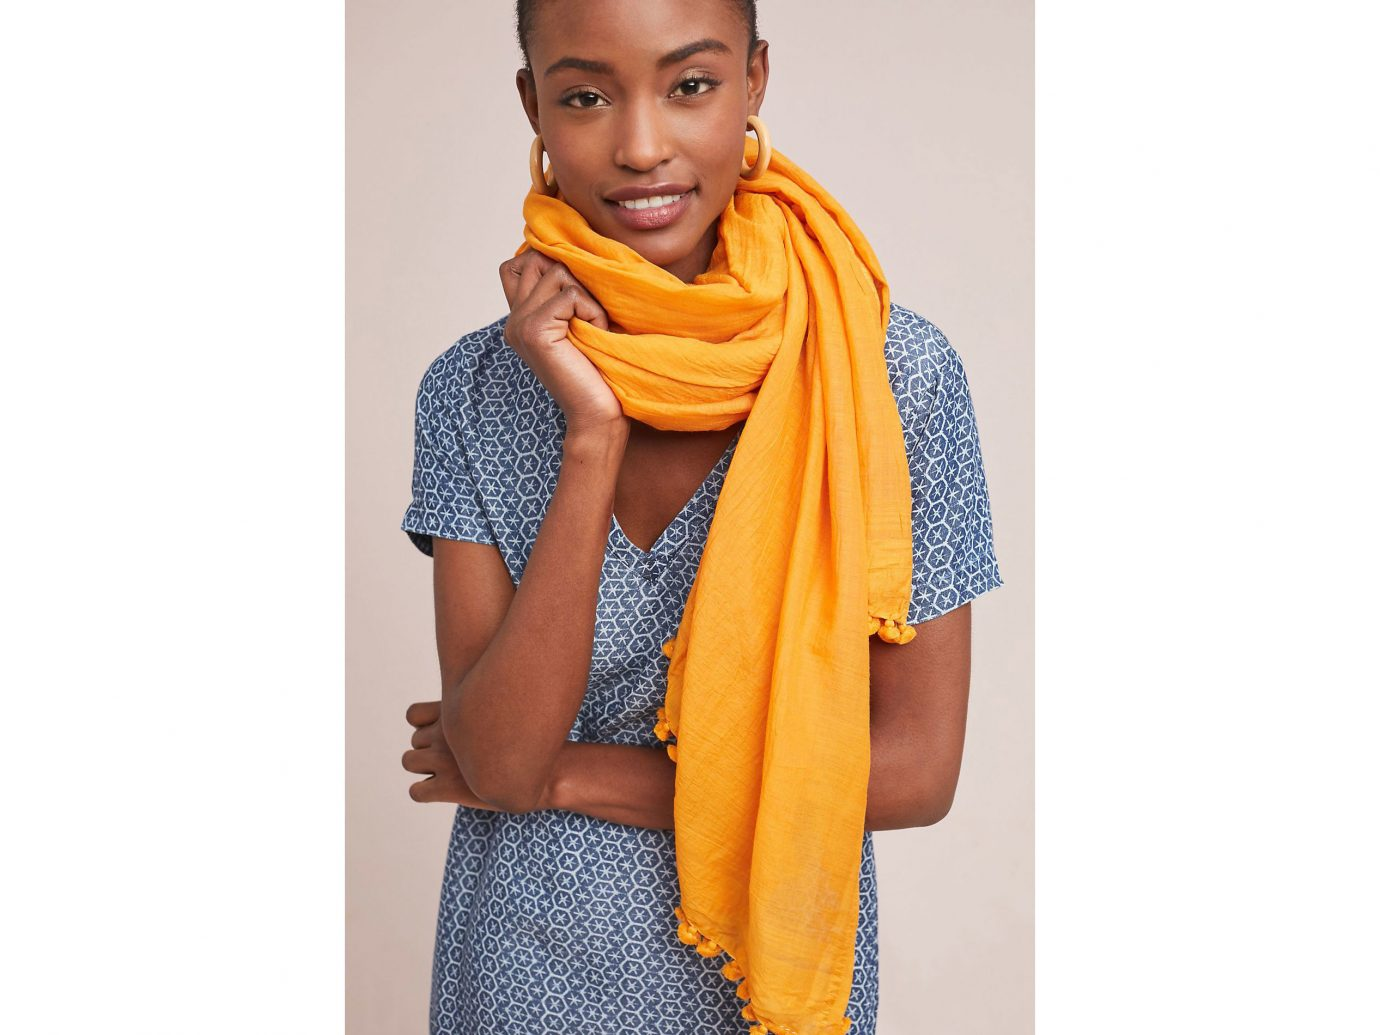 Morocco Packing Tips Style + Design Travel Shop person clothing yellow scarf stole orange colored